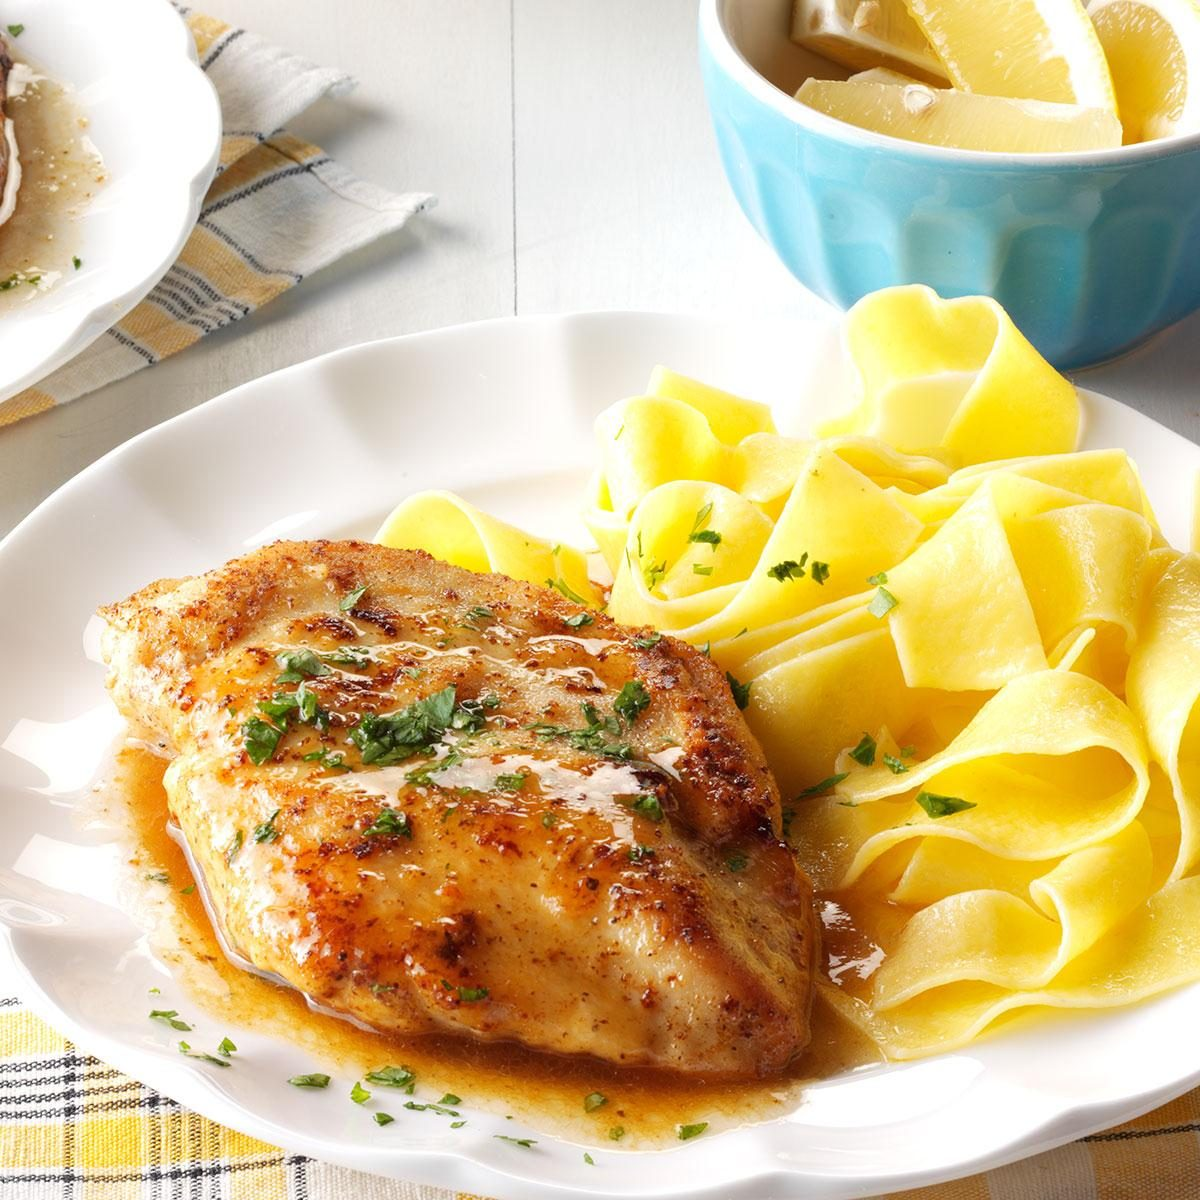 Wednesday: Quick Chicken Piccata